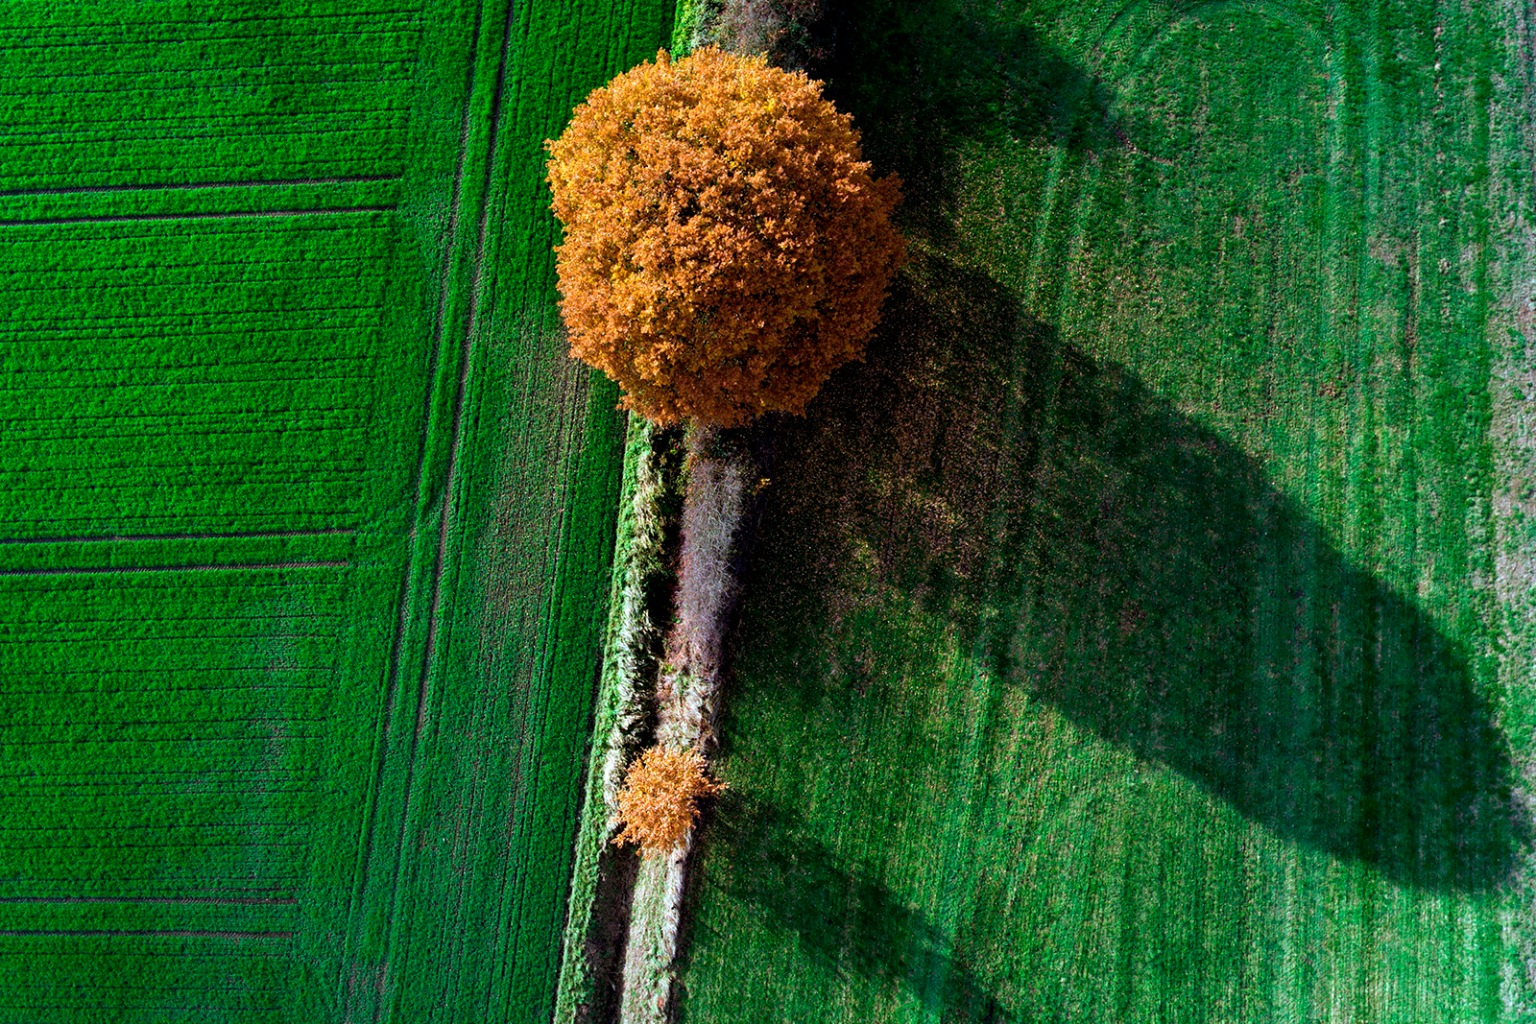 Autumn colors trees in a field in Vinnum, Germany, on Nov 13. INA FASSBENDER/AFP/Getty Images